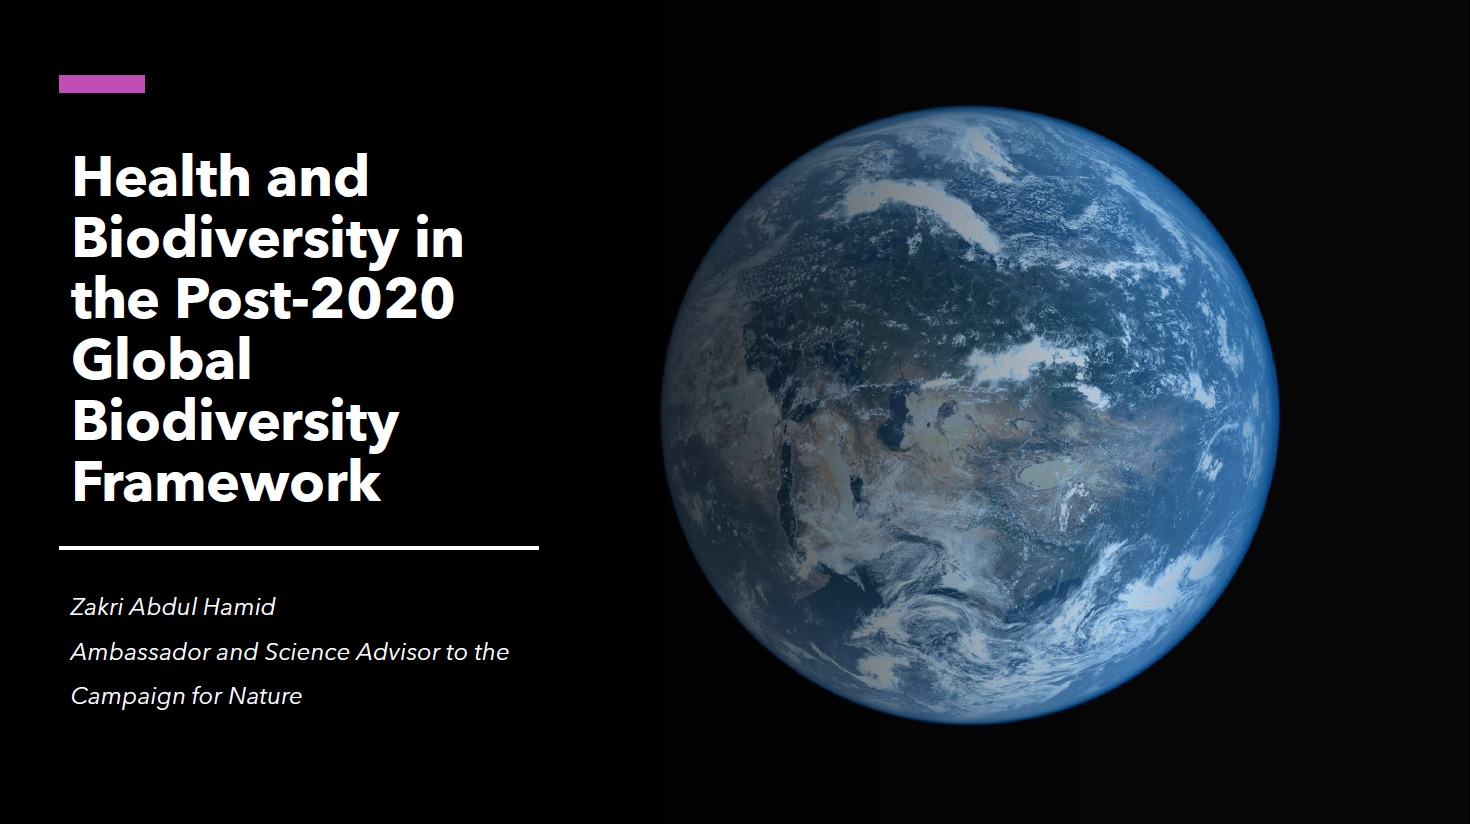 Health and Biodiversity in the Post 2020